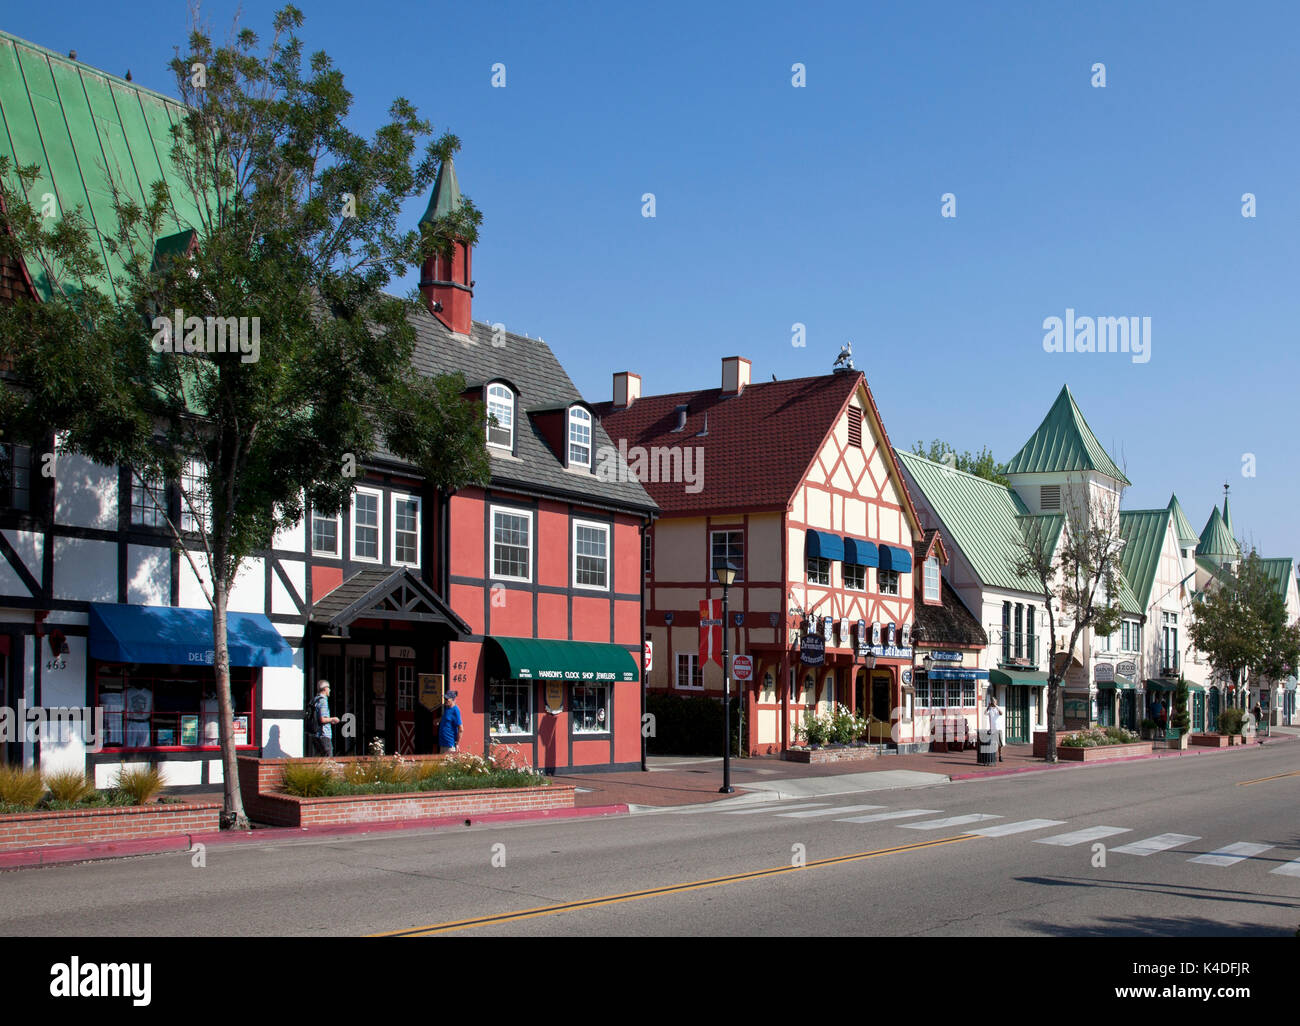 Founded in 1911 by Danes, Solvang's 12-block downtown is a concentrated collection of Danish farm-style architecture. - Stock Image